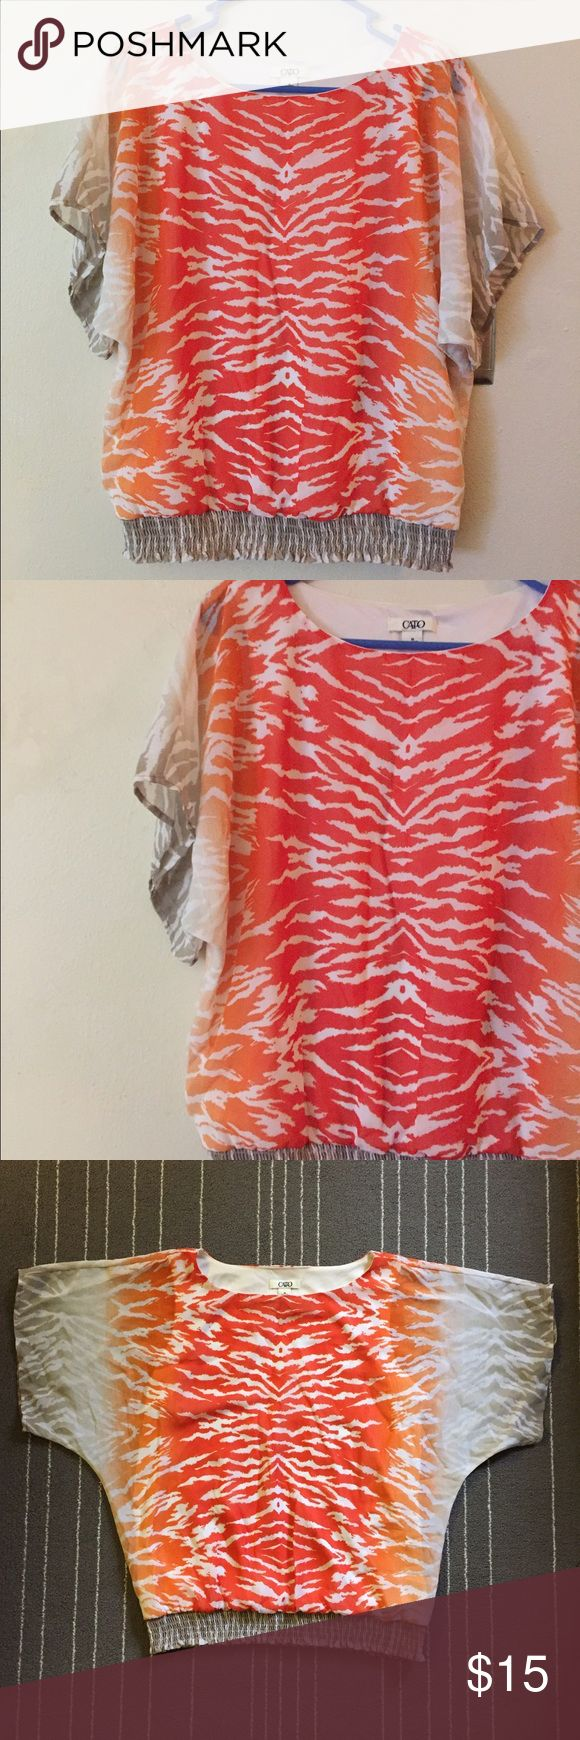 @PRICE DROP@  soon Women animal print shirt Very nice shirt in like a new condition. Only worn a few times. Nice for spring and summer. Cato Tops Blouses